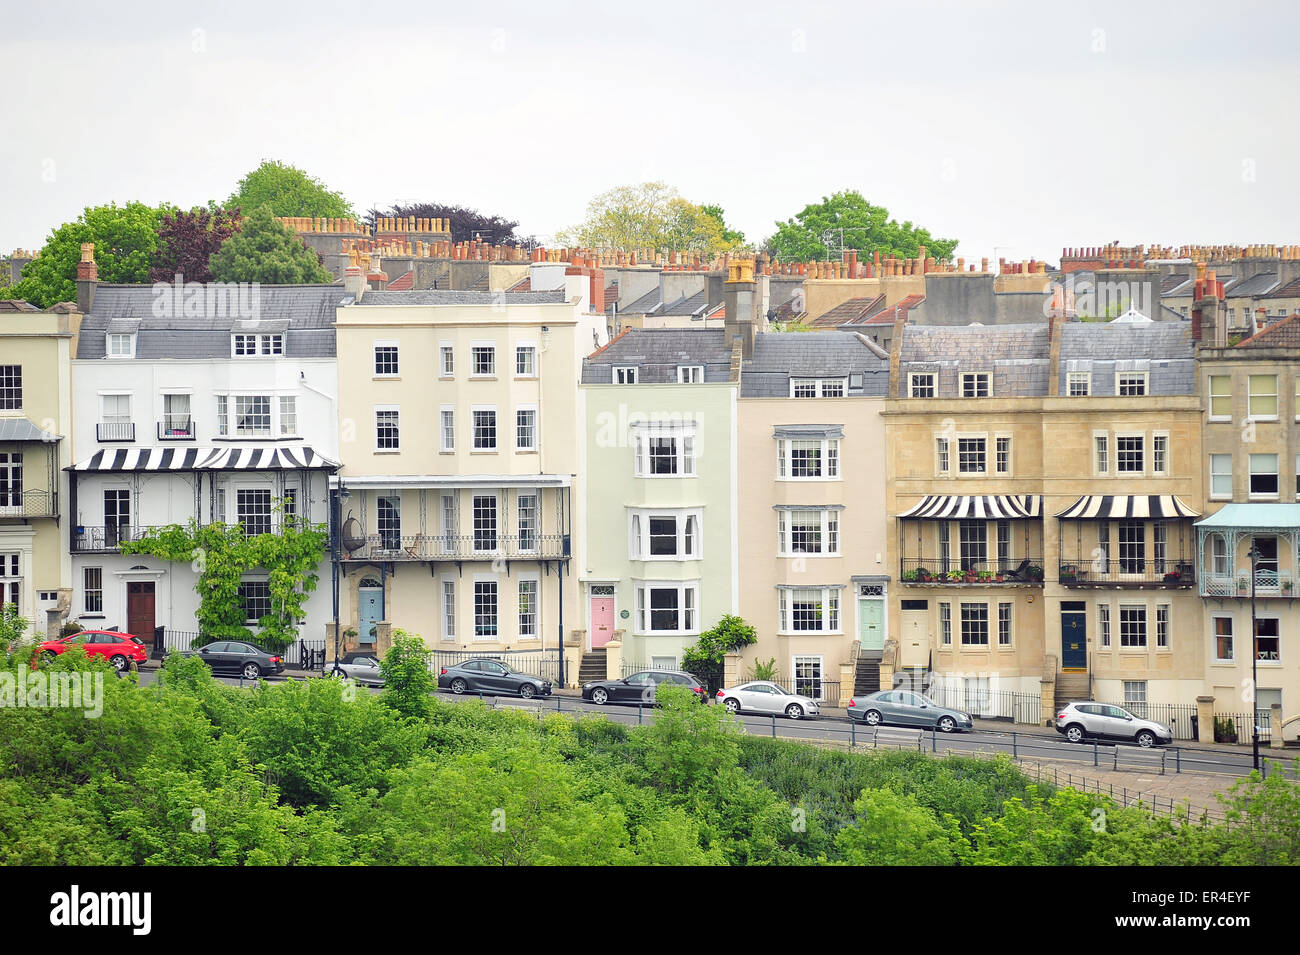 A row of terraced housing in Bristol that overlooks the Avon Gorge and the Clifton Suspension Bridge. - Stock Image